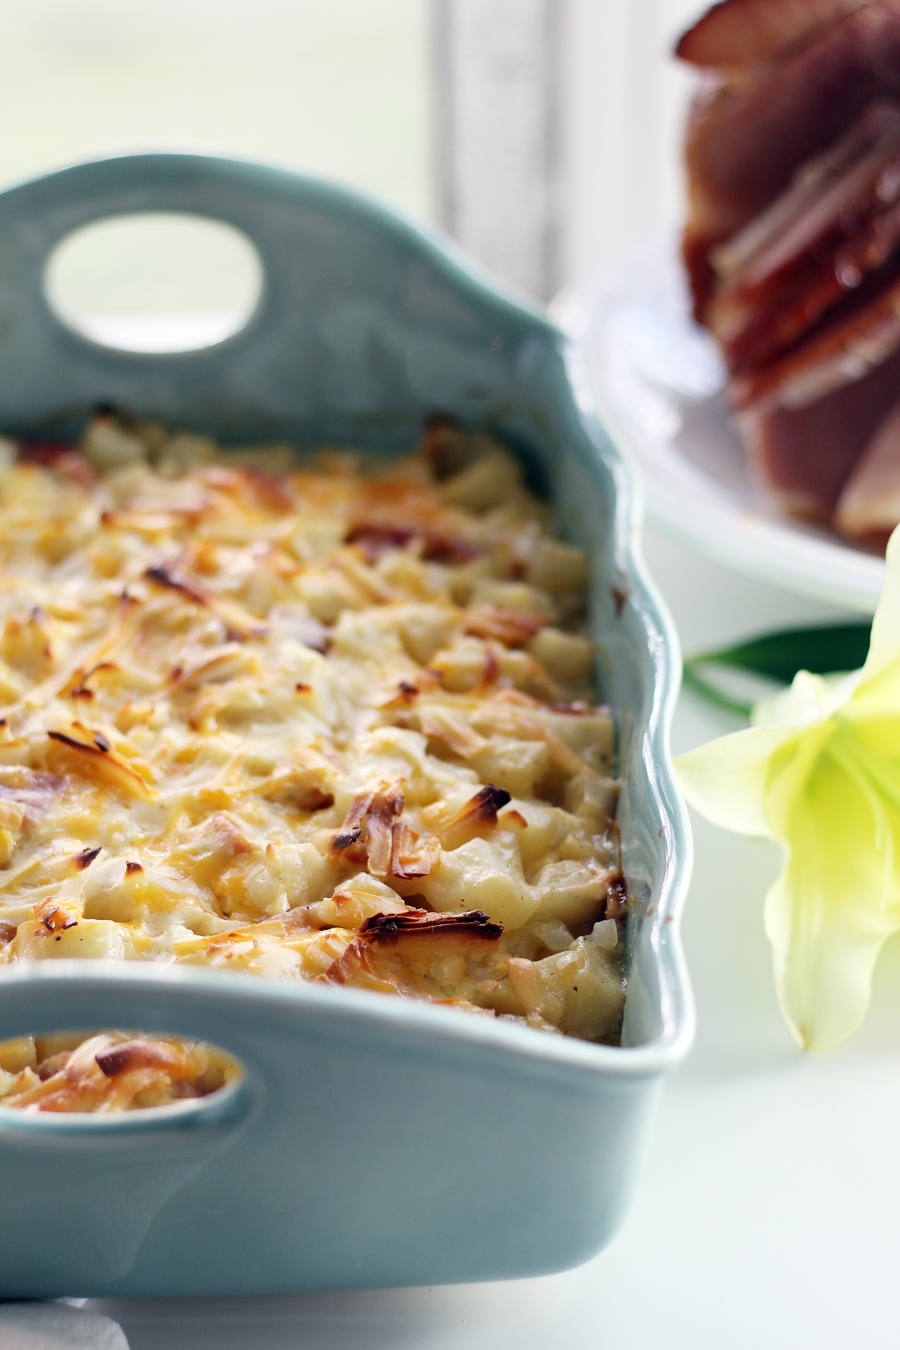 Baked potato and ham casserole topped with melted cheese, in a blue baking dish with a honey ham and a lily in the background.